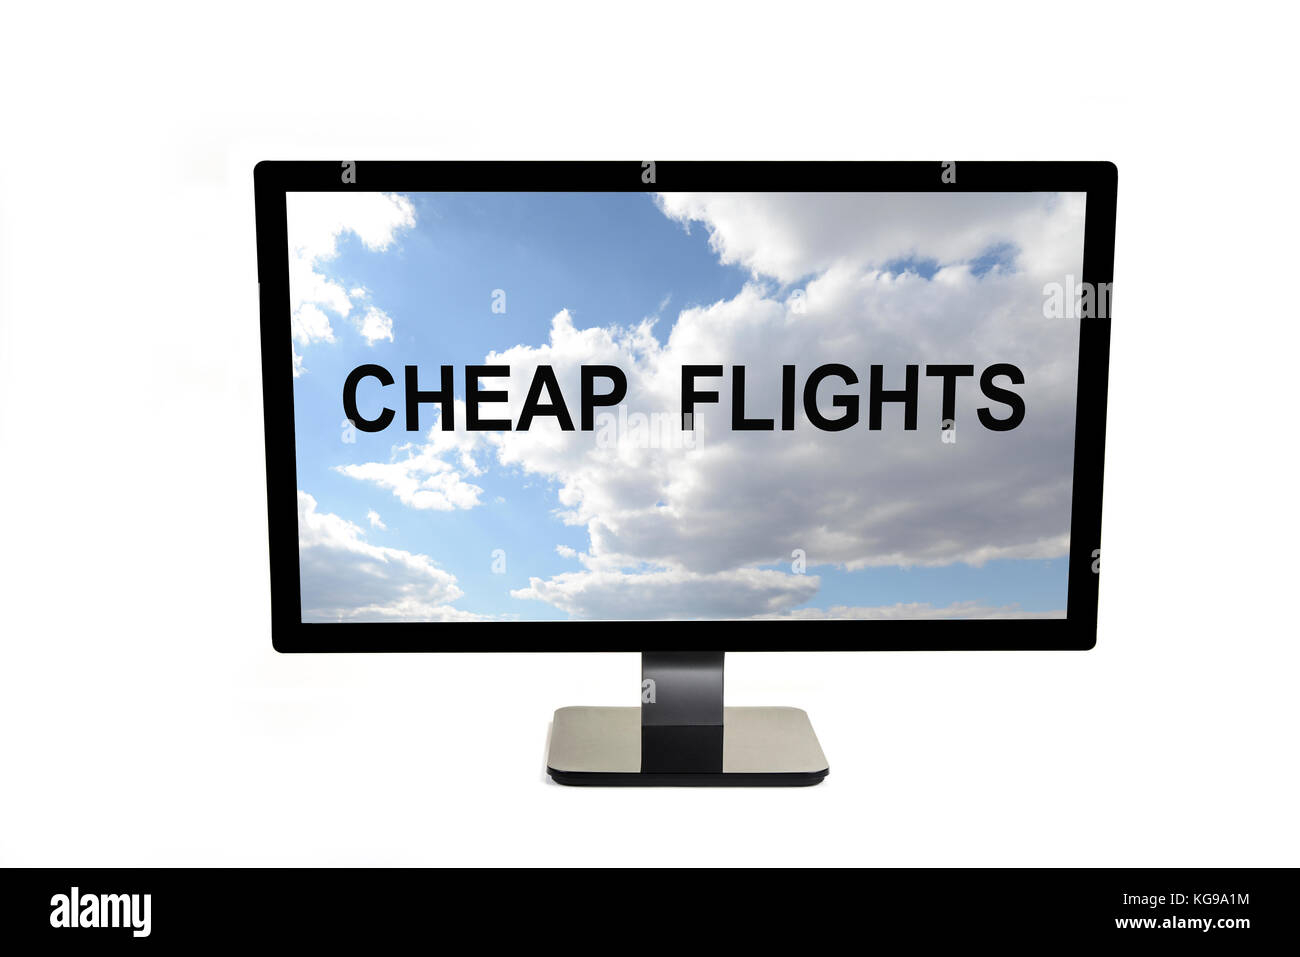 Low Cost Airlines Stock Photos & Low Cost Airlines Stock Images - Alamy